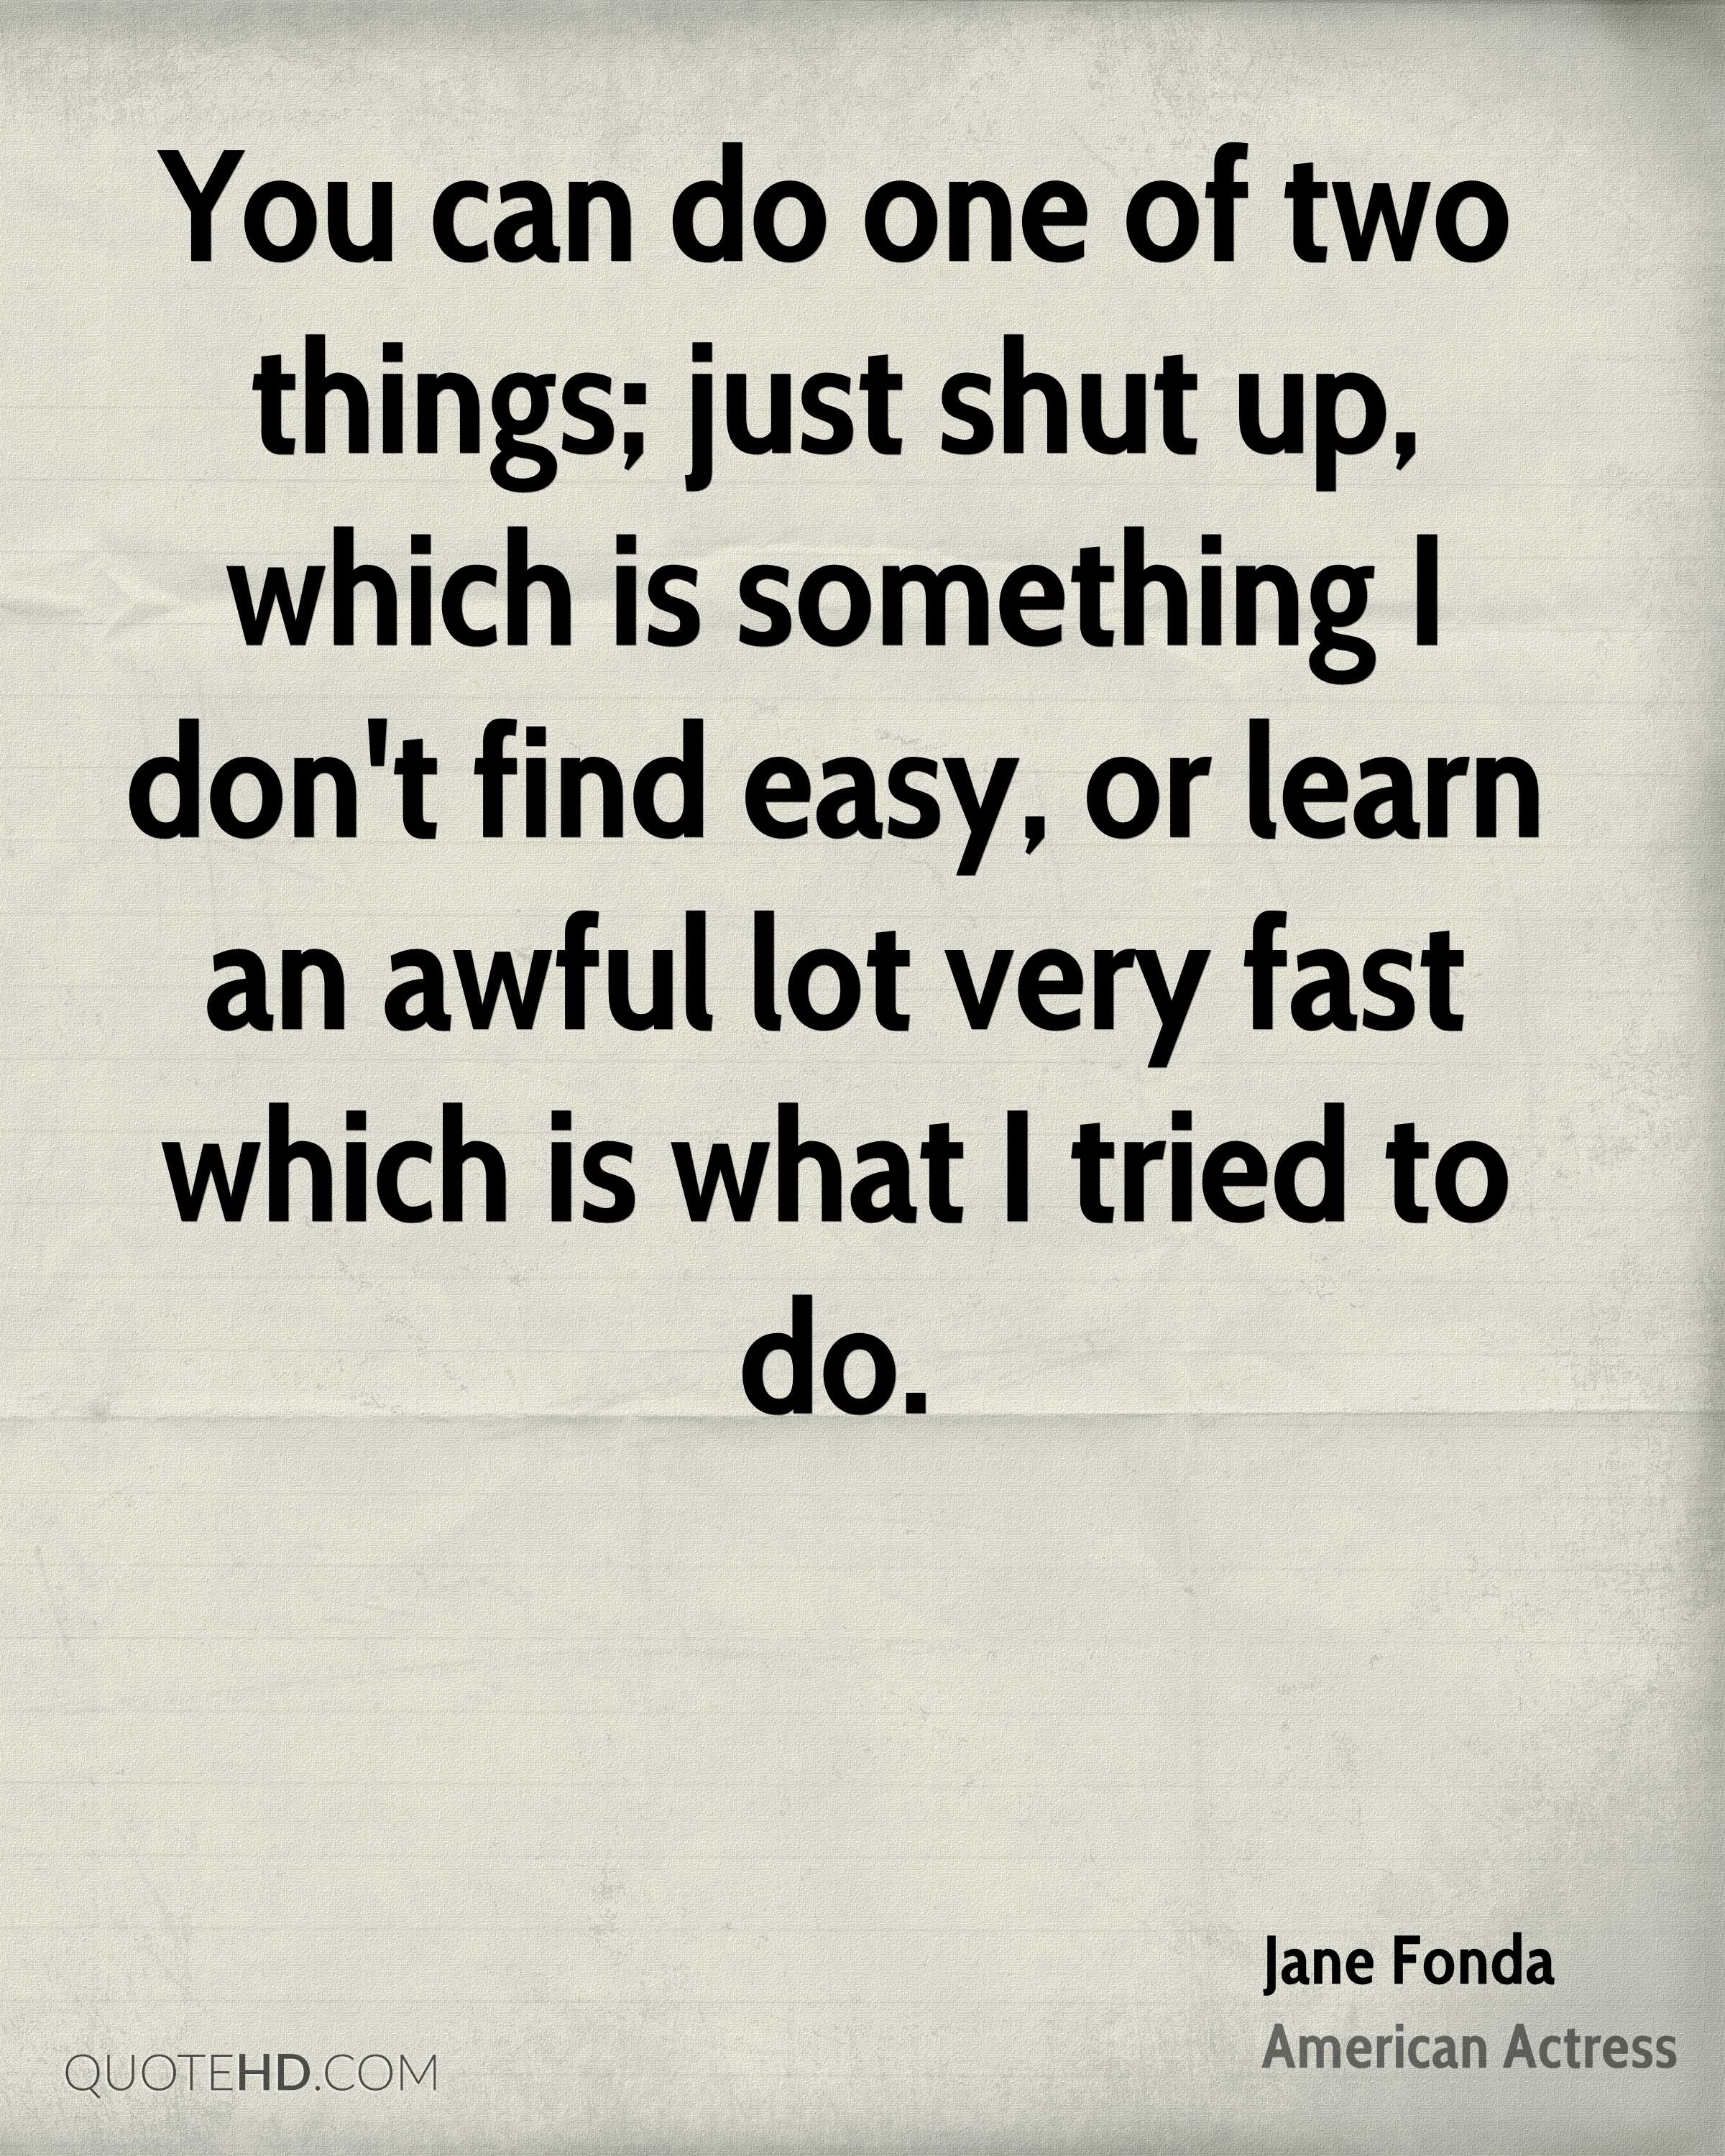 You can do one of two things; just shut up, which is something I don't find easy, or learn an awful lot very fast which is what I tried to do.